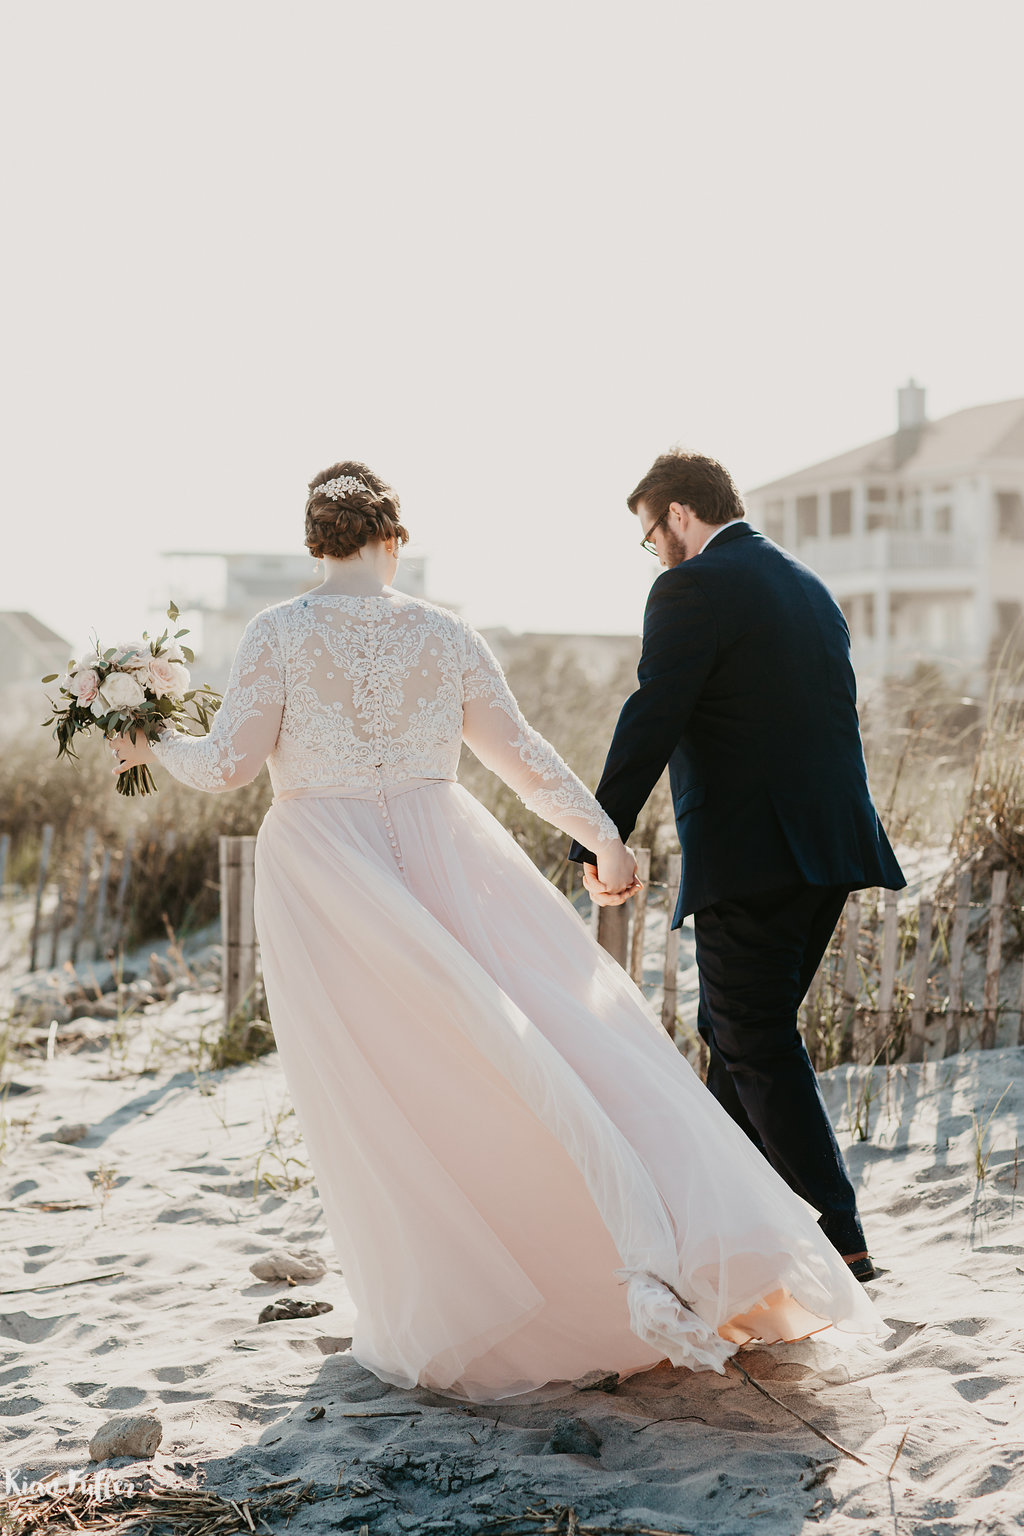 Bride & Groom On Beach | Rian Fuller Photography